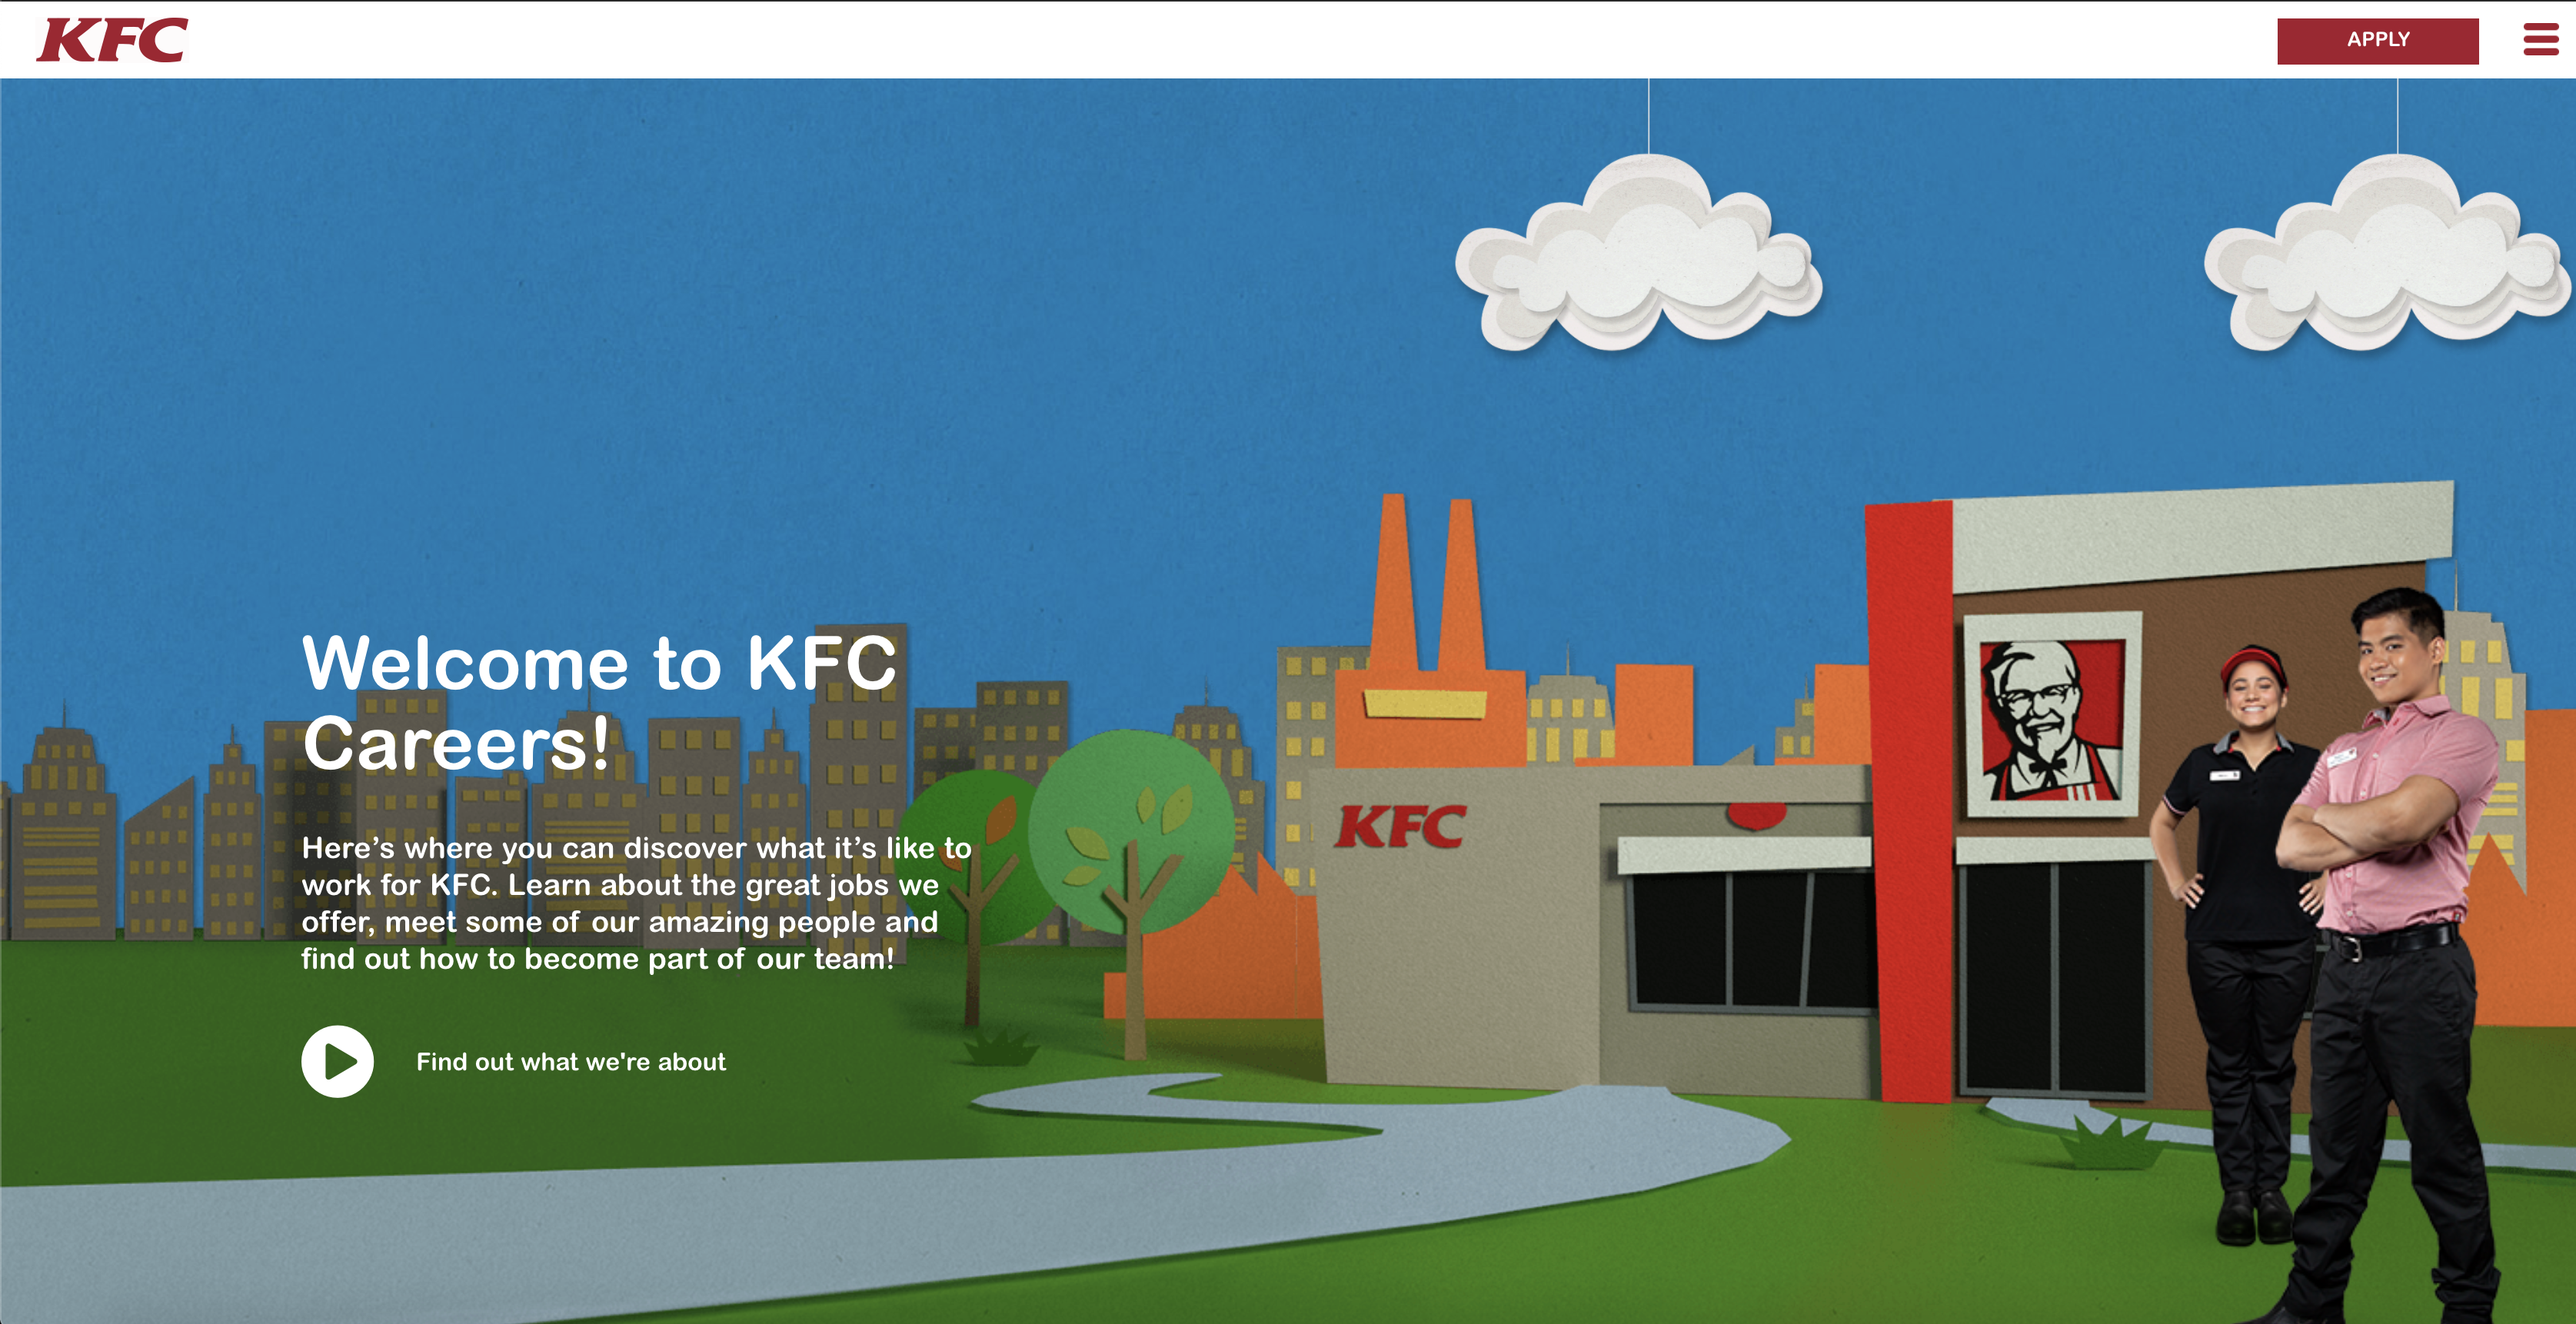 kfc australia job application step 3